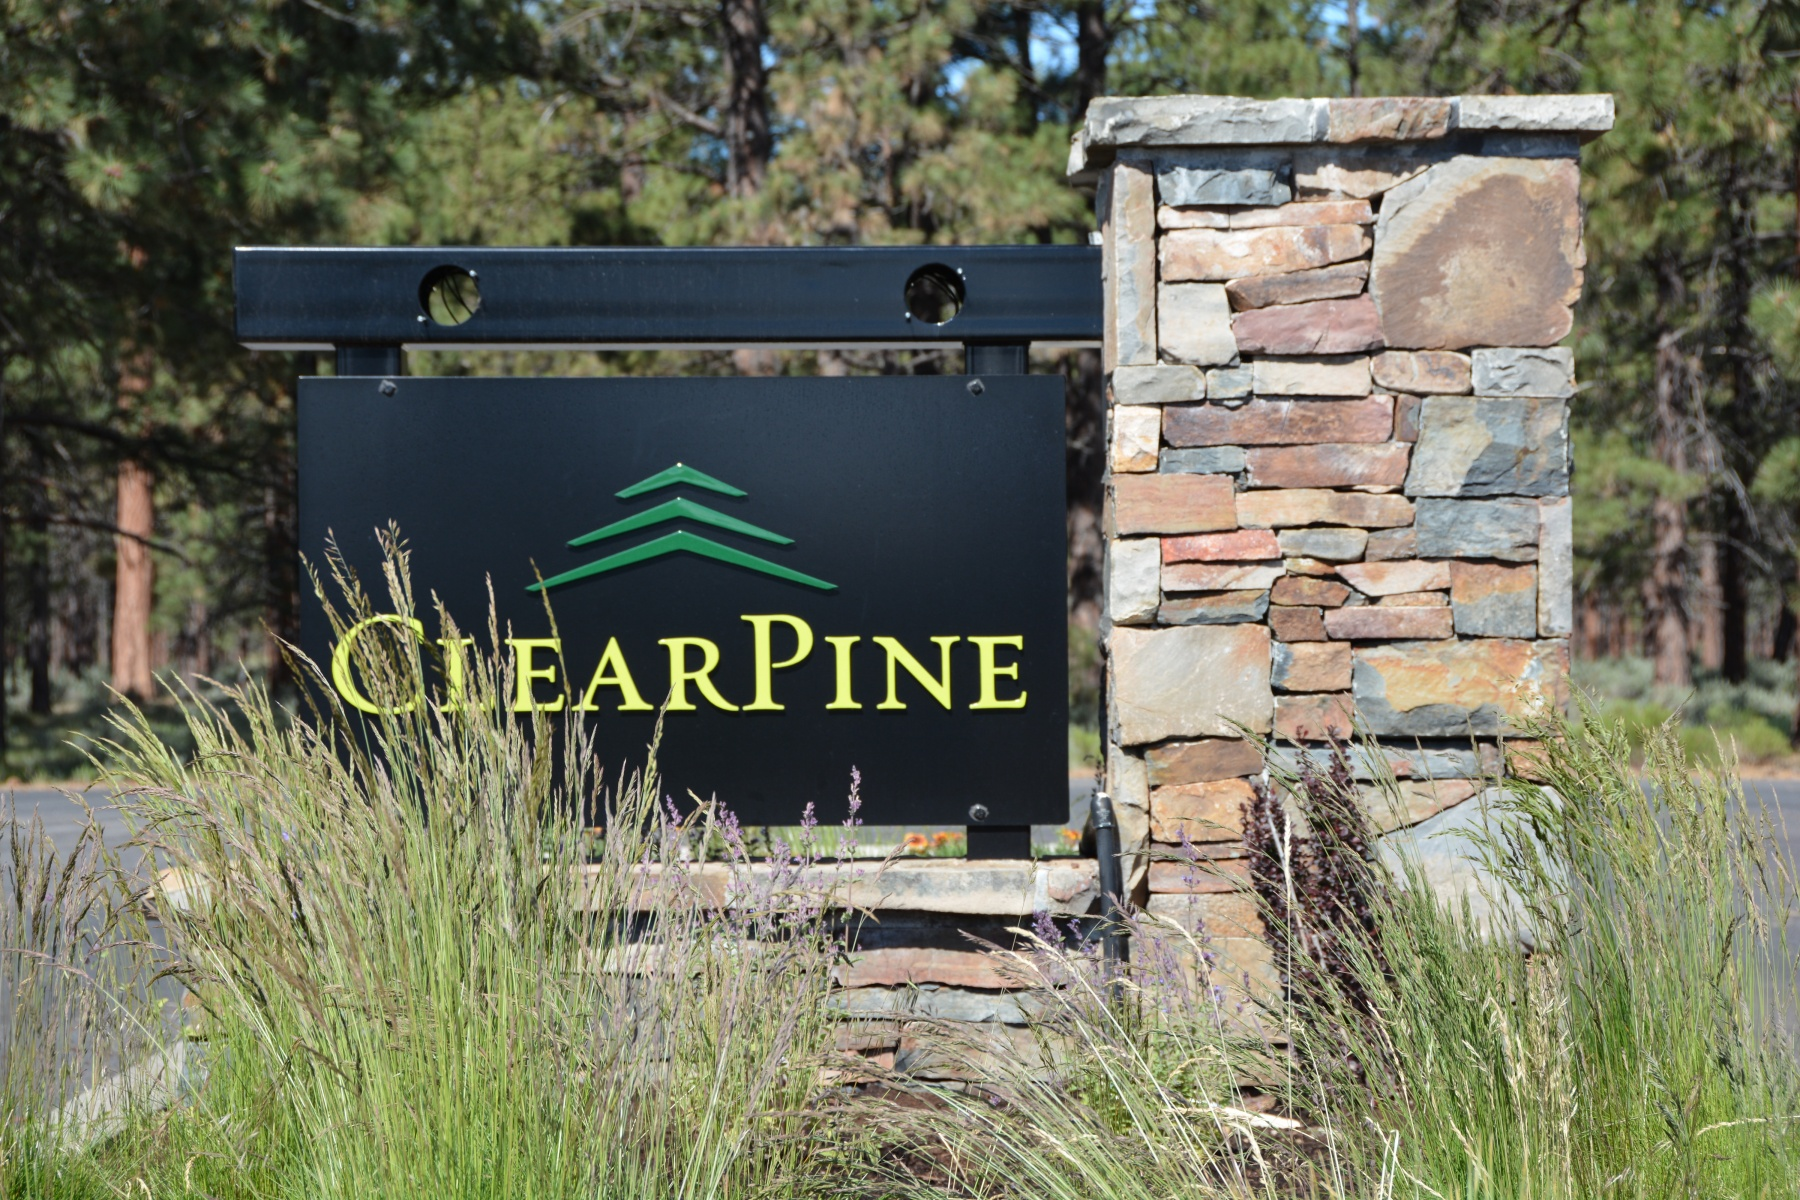 Land for Sale at Flat Build Ready Lot in ClearPine! 0 Heising Dr Lot 16 Sisters, Oregon, 97759 United States